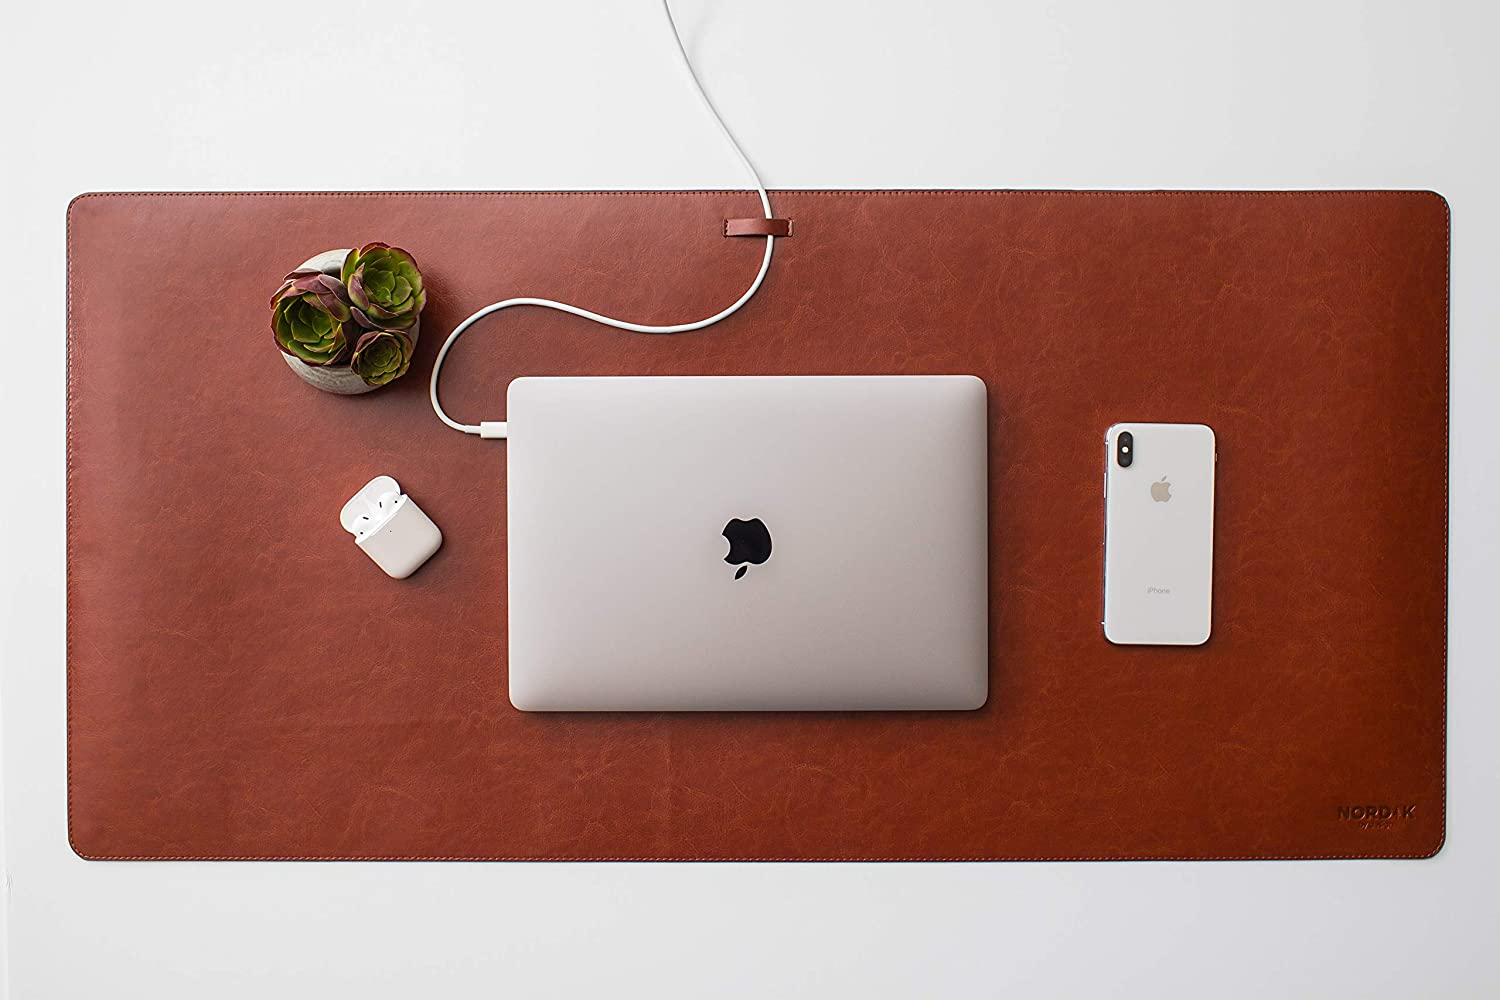 """Leather Desk Pad with Cable Management (Saddle Brown 35"""" x 17"""") Premium Extended Mouse Mat for Home Office - Non-Slip Vegan Leather Desk Protector"""